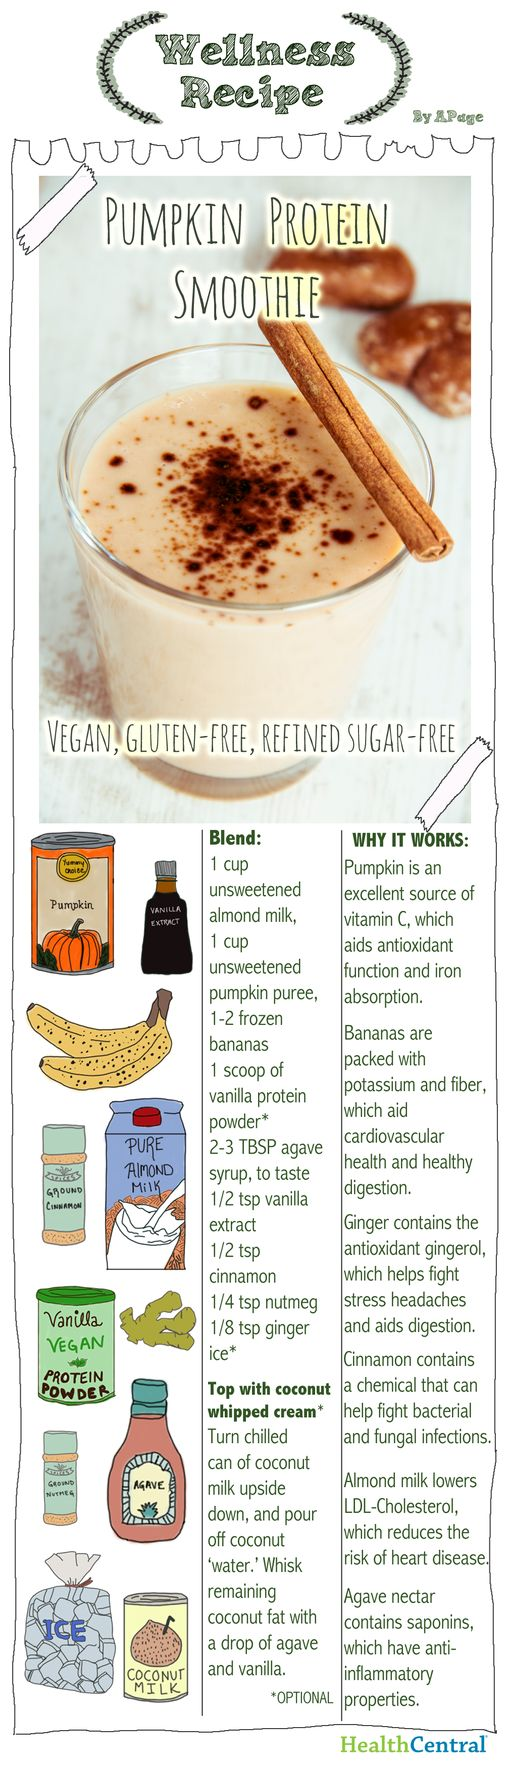 This recipe screams fall!  Try this tasty pumpkin protein shake that's vegan, gluten-free, and refined sugar-free.  The chilled pumpkin tastes just like pumpkin pie. So good, you will want seconds!